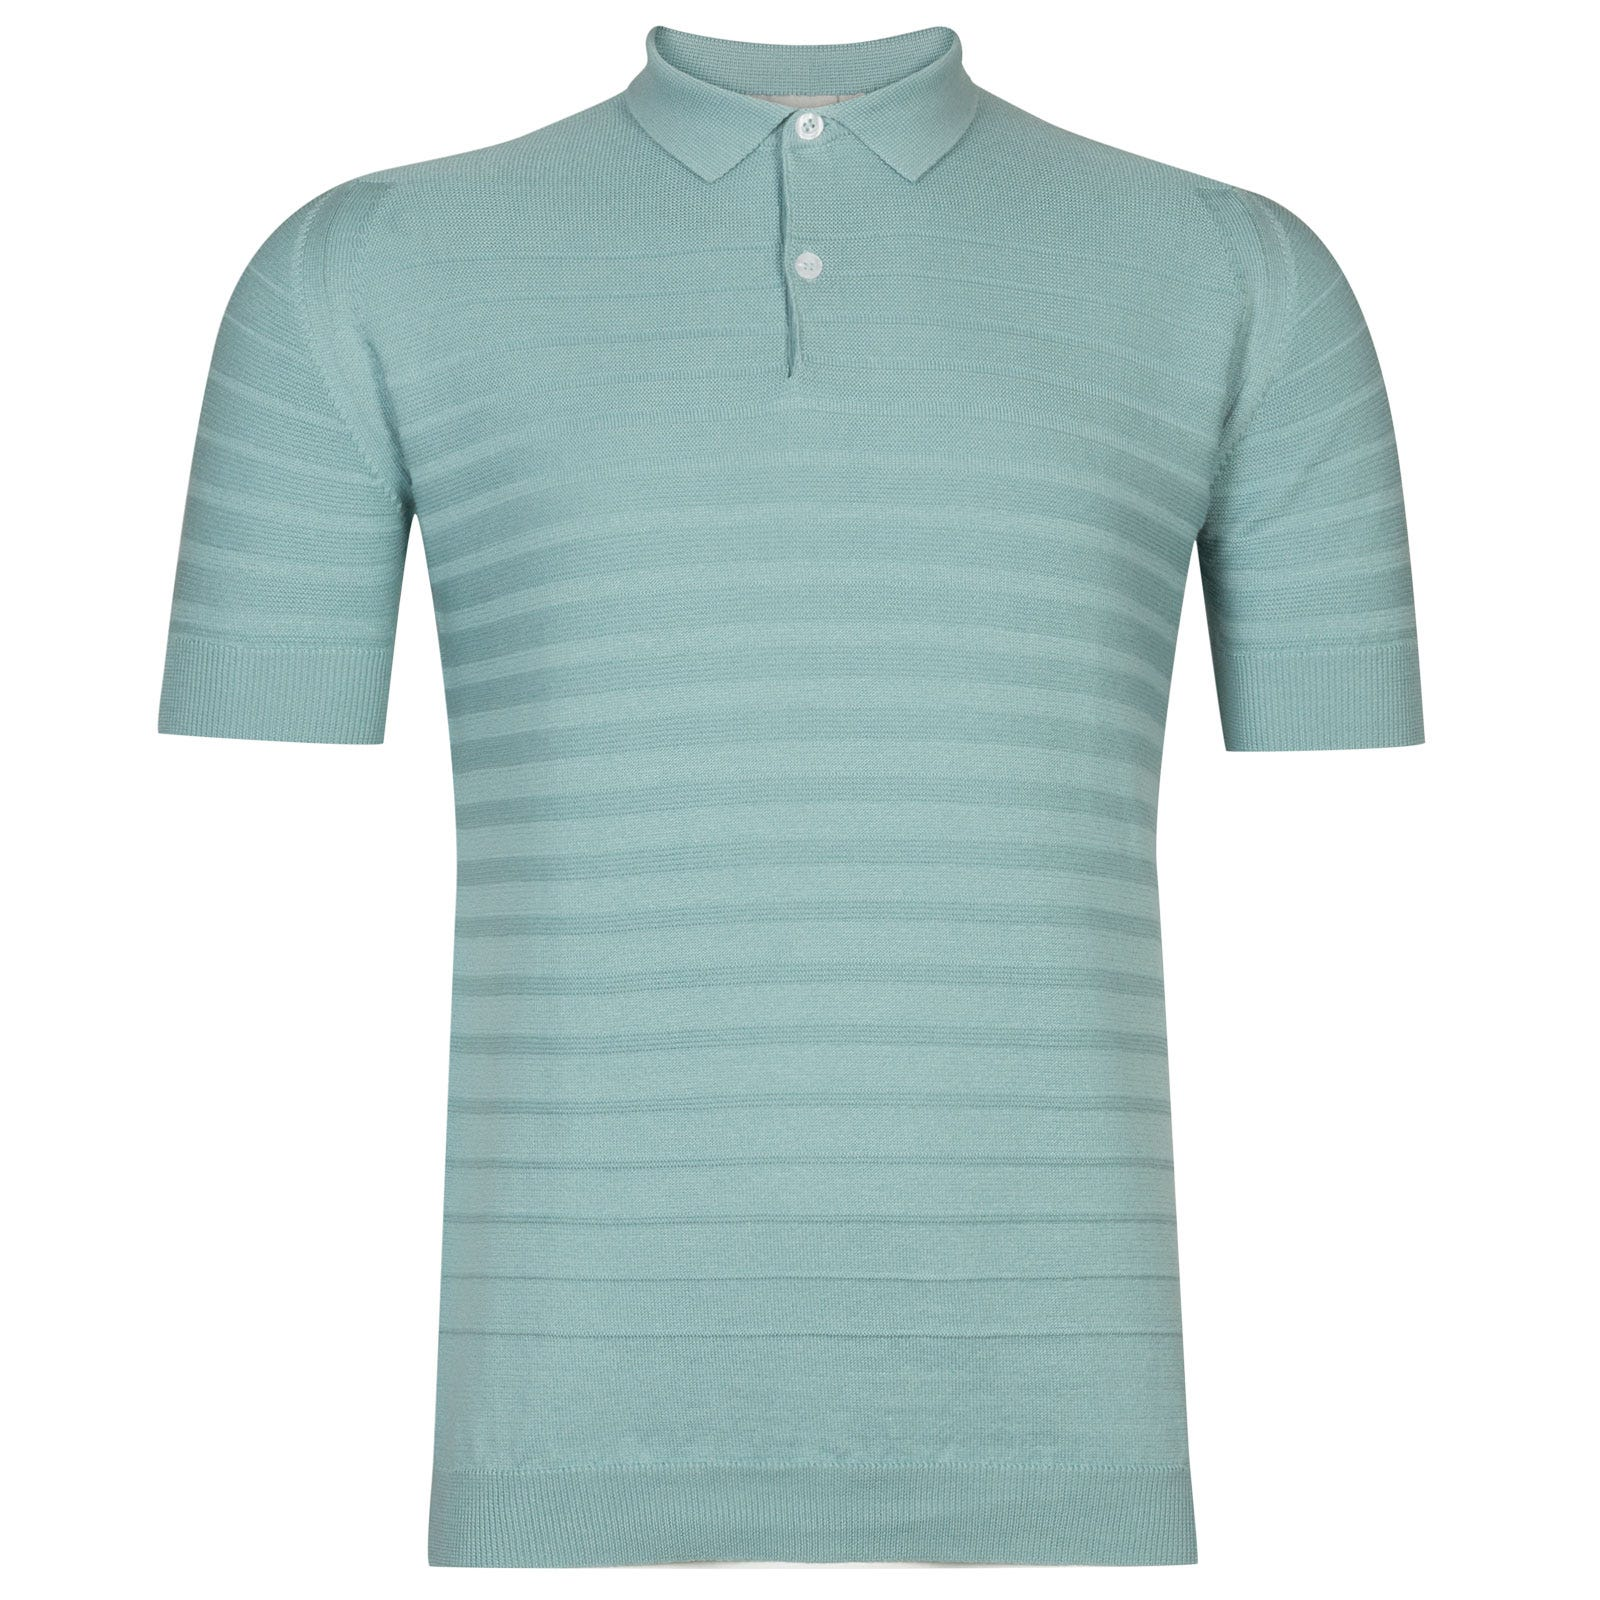 John Smedley Zuber Cotton Shirt in Terrill Green -Xl